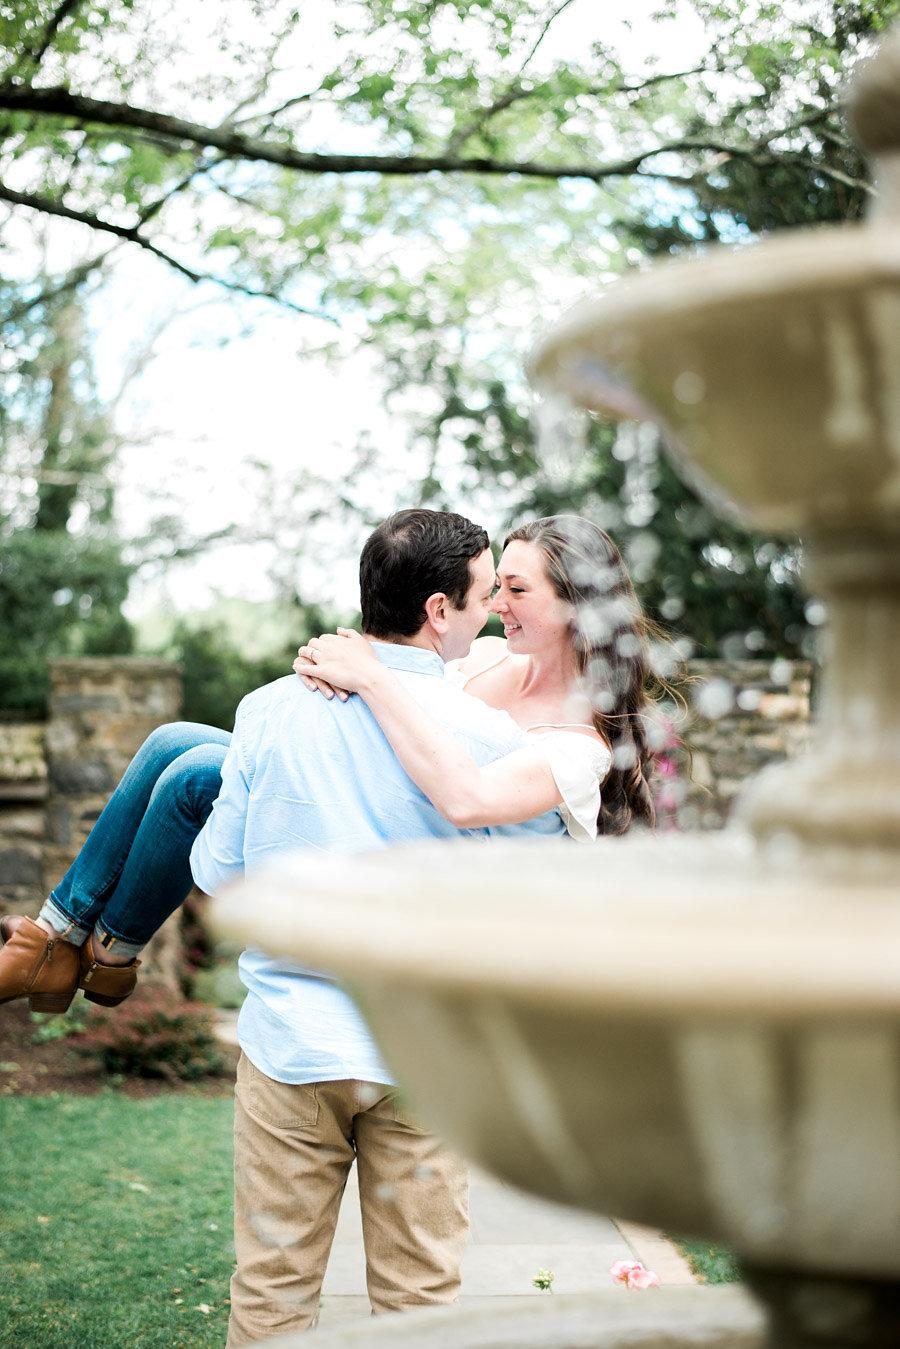 emcee_studio_photographie_engagement_photography_bride_groom_emily_jack_march_2016-13